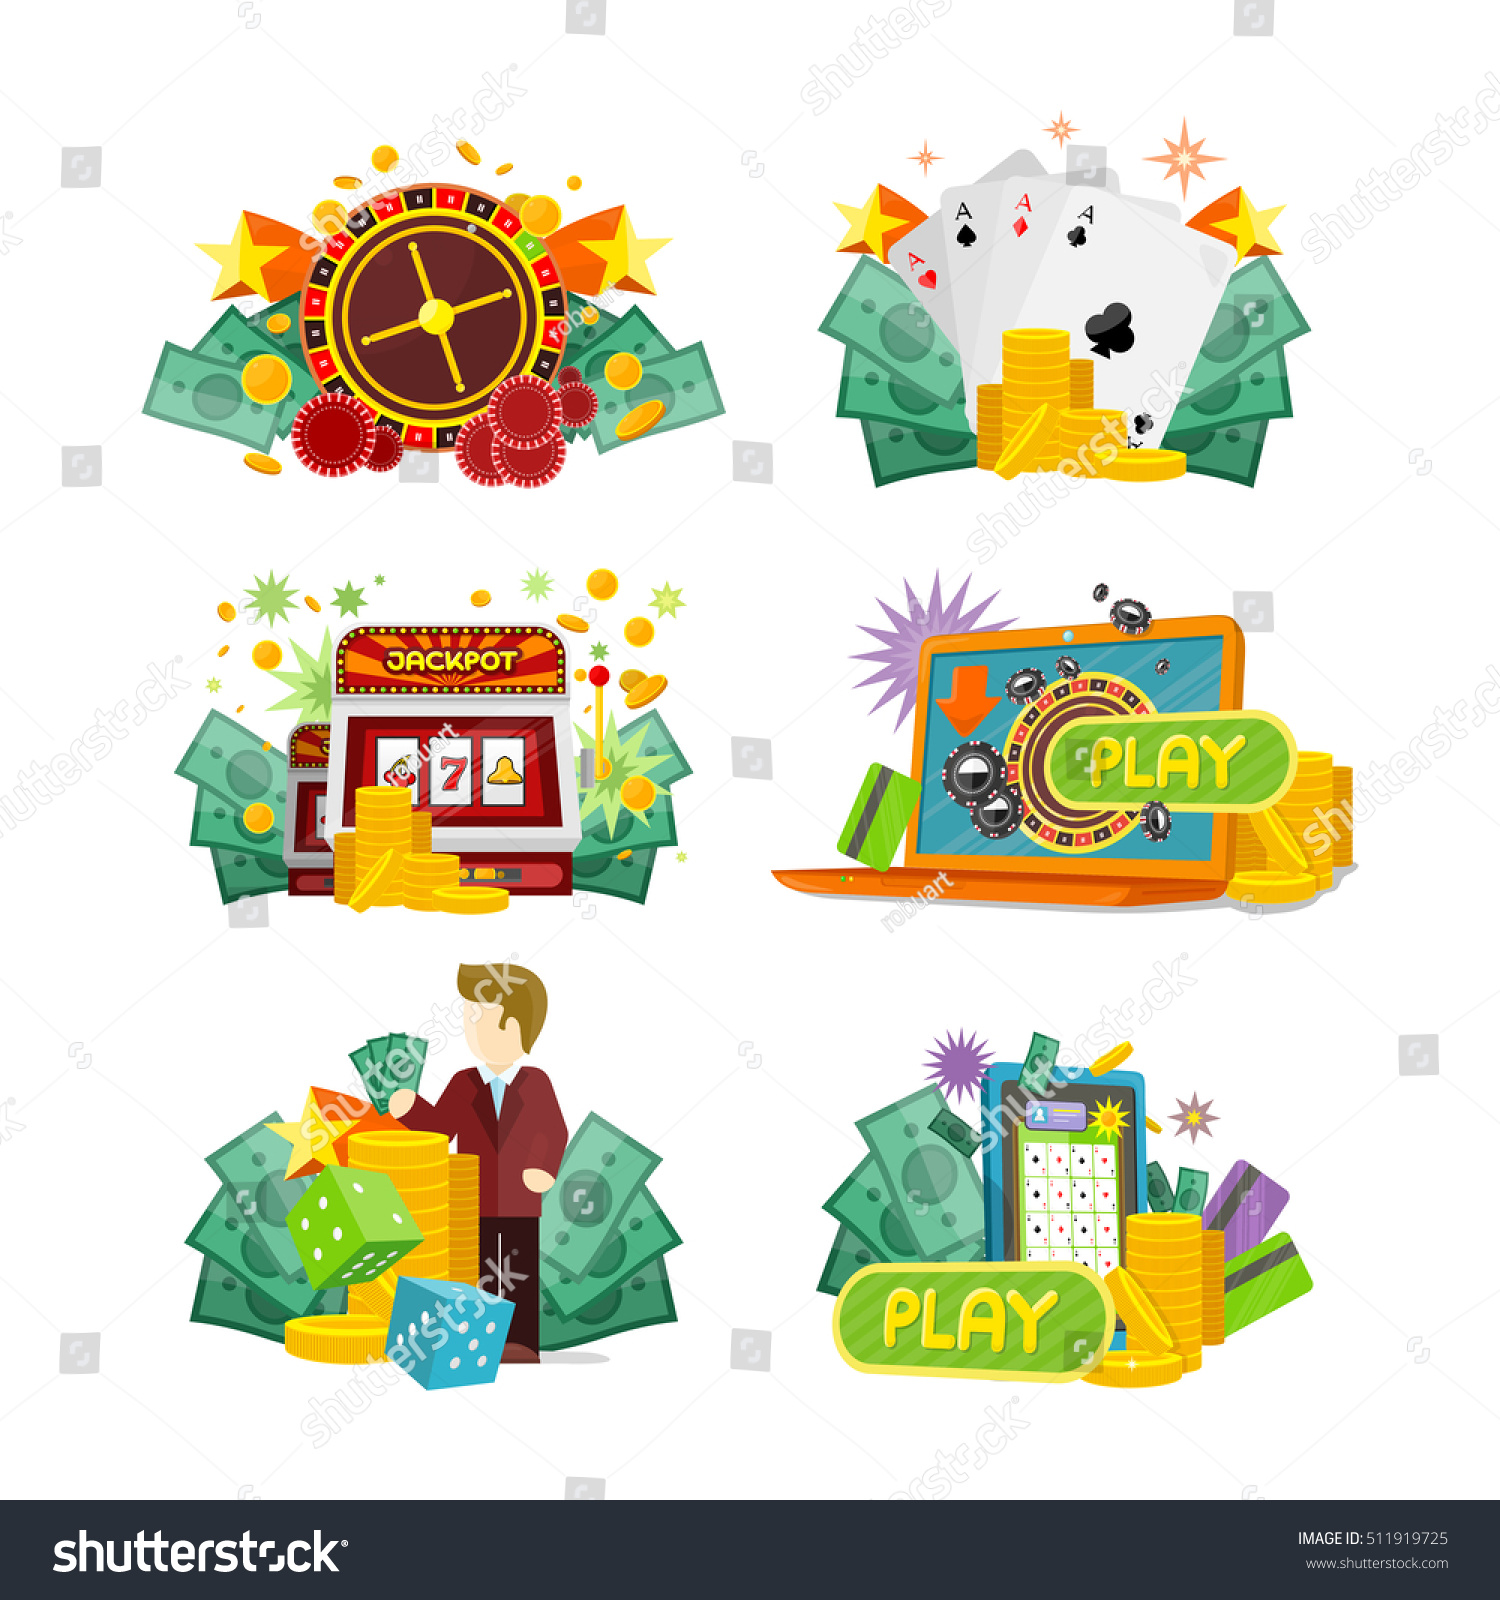 Traditional european roulette table vector illustration stock vector -  Vectors Illustrations Footage Music Casino Slot Machines Dice Poker And Online Games Icons European Roulette Wheel